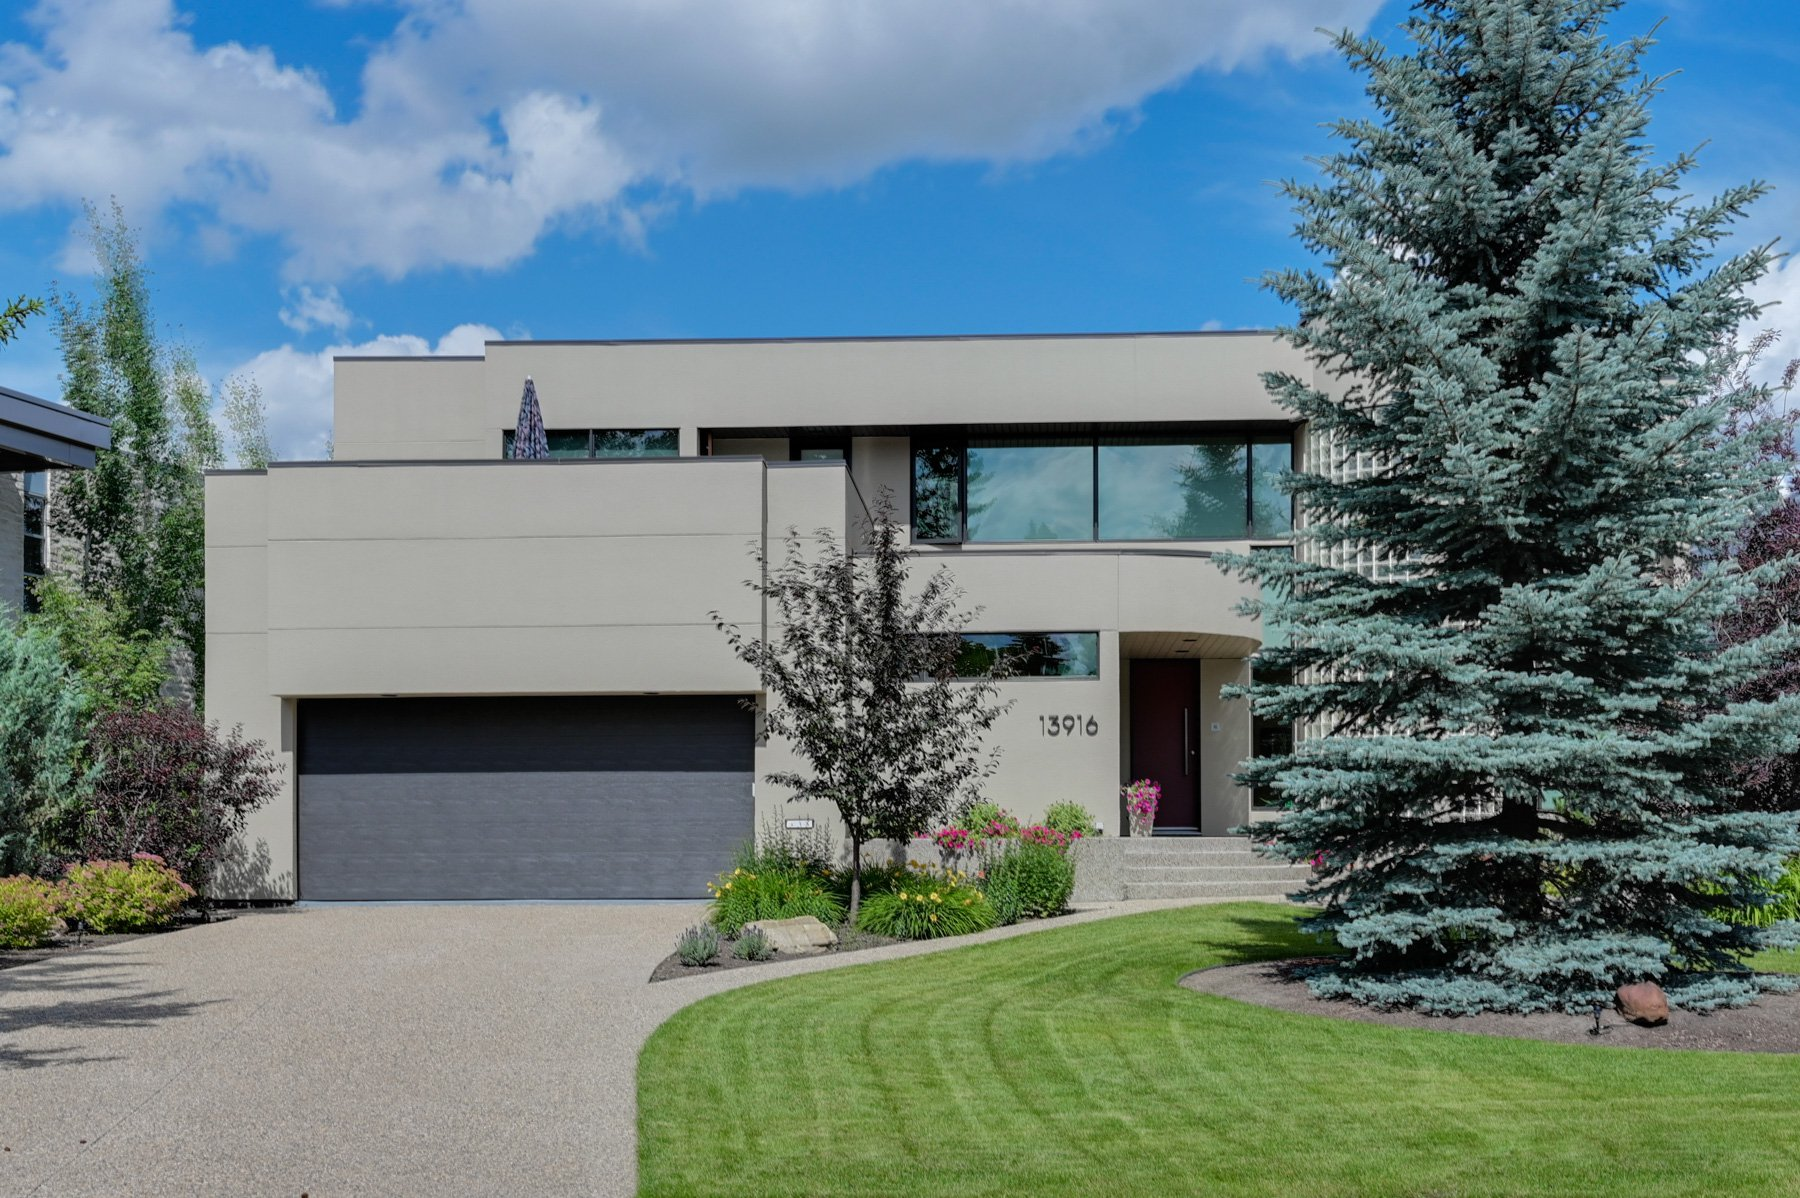 Main Photo: 13916 Valleyview Drive: Edmonton House for sale